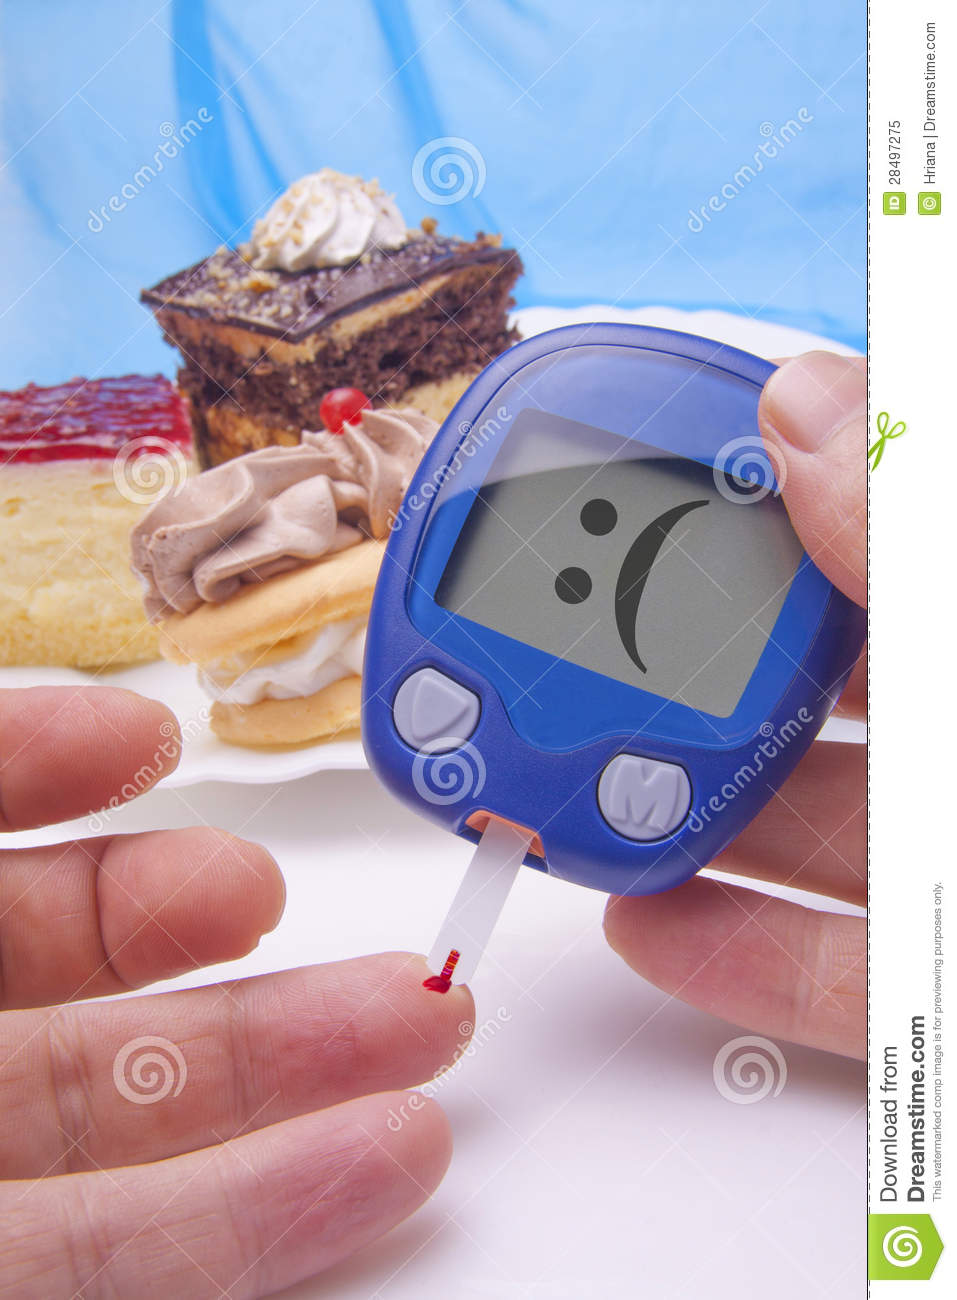 Funny Blood Sugar Test Royalty Free Stock Photo Image